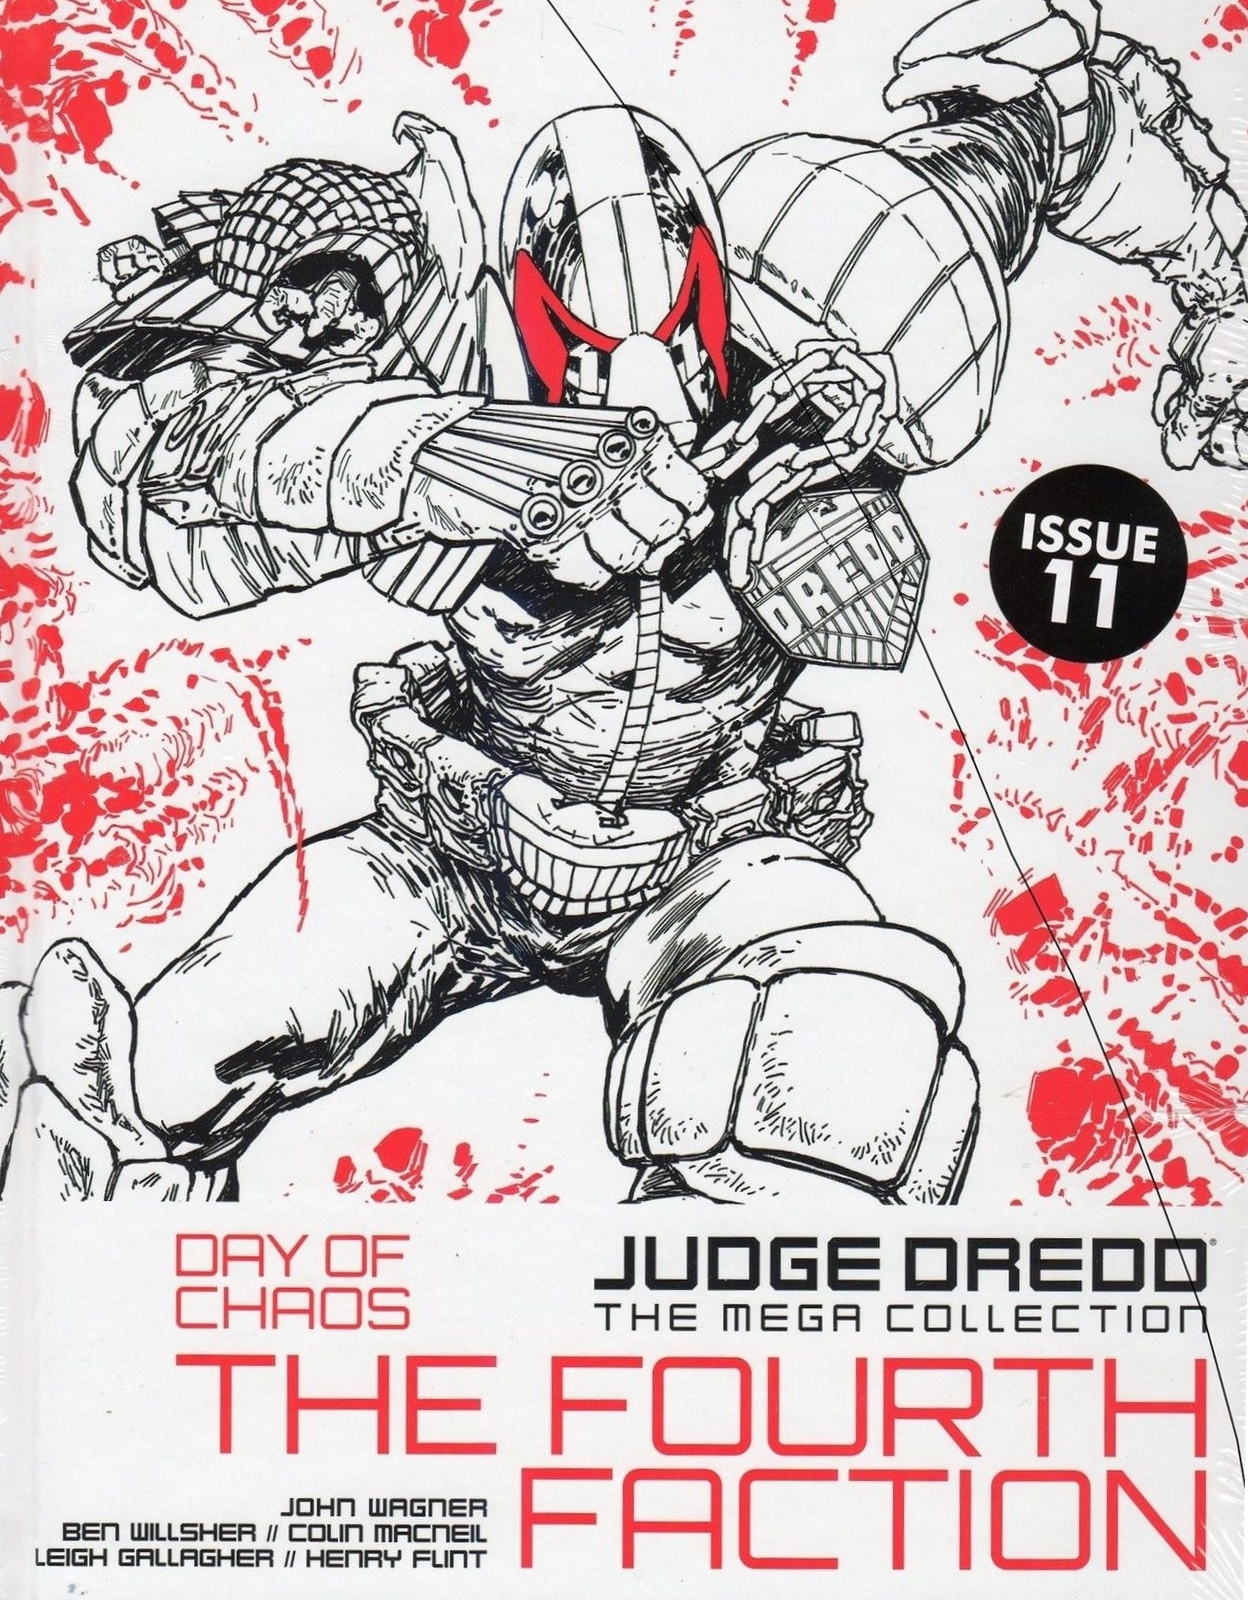 Judge Dredd: Day Of Chaos: The Fourth Faction (Judge Dredd: The Mega Collection, #11) John Wagner